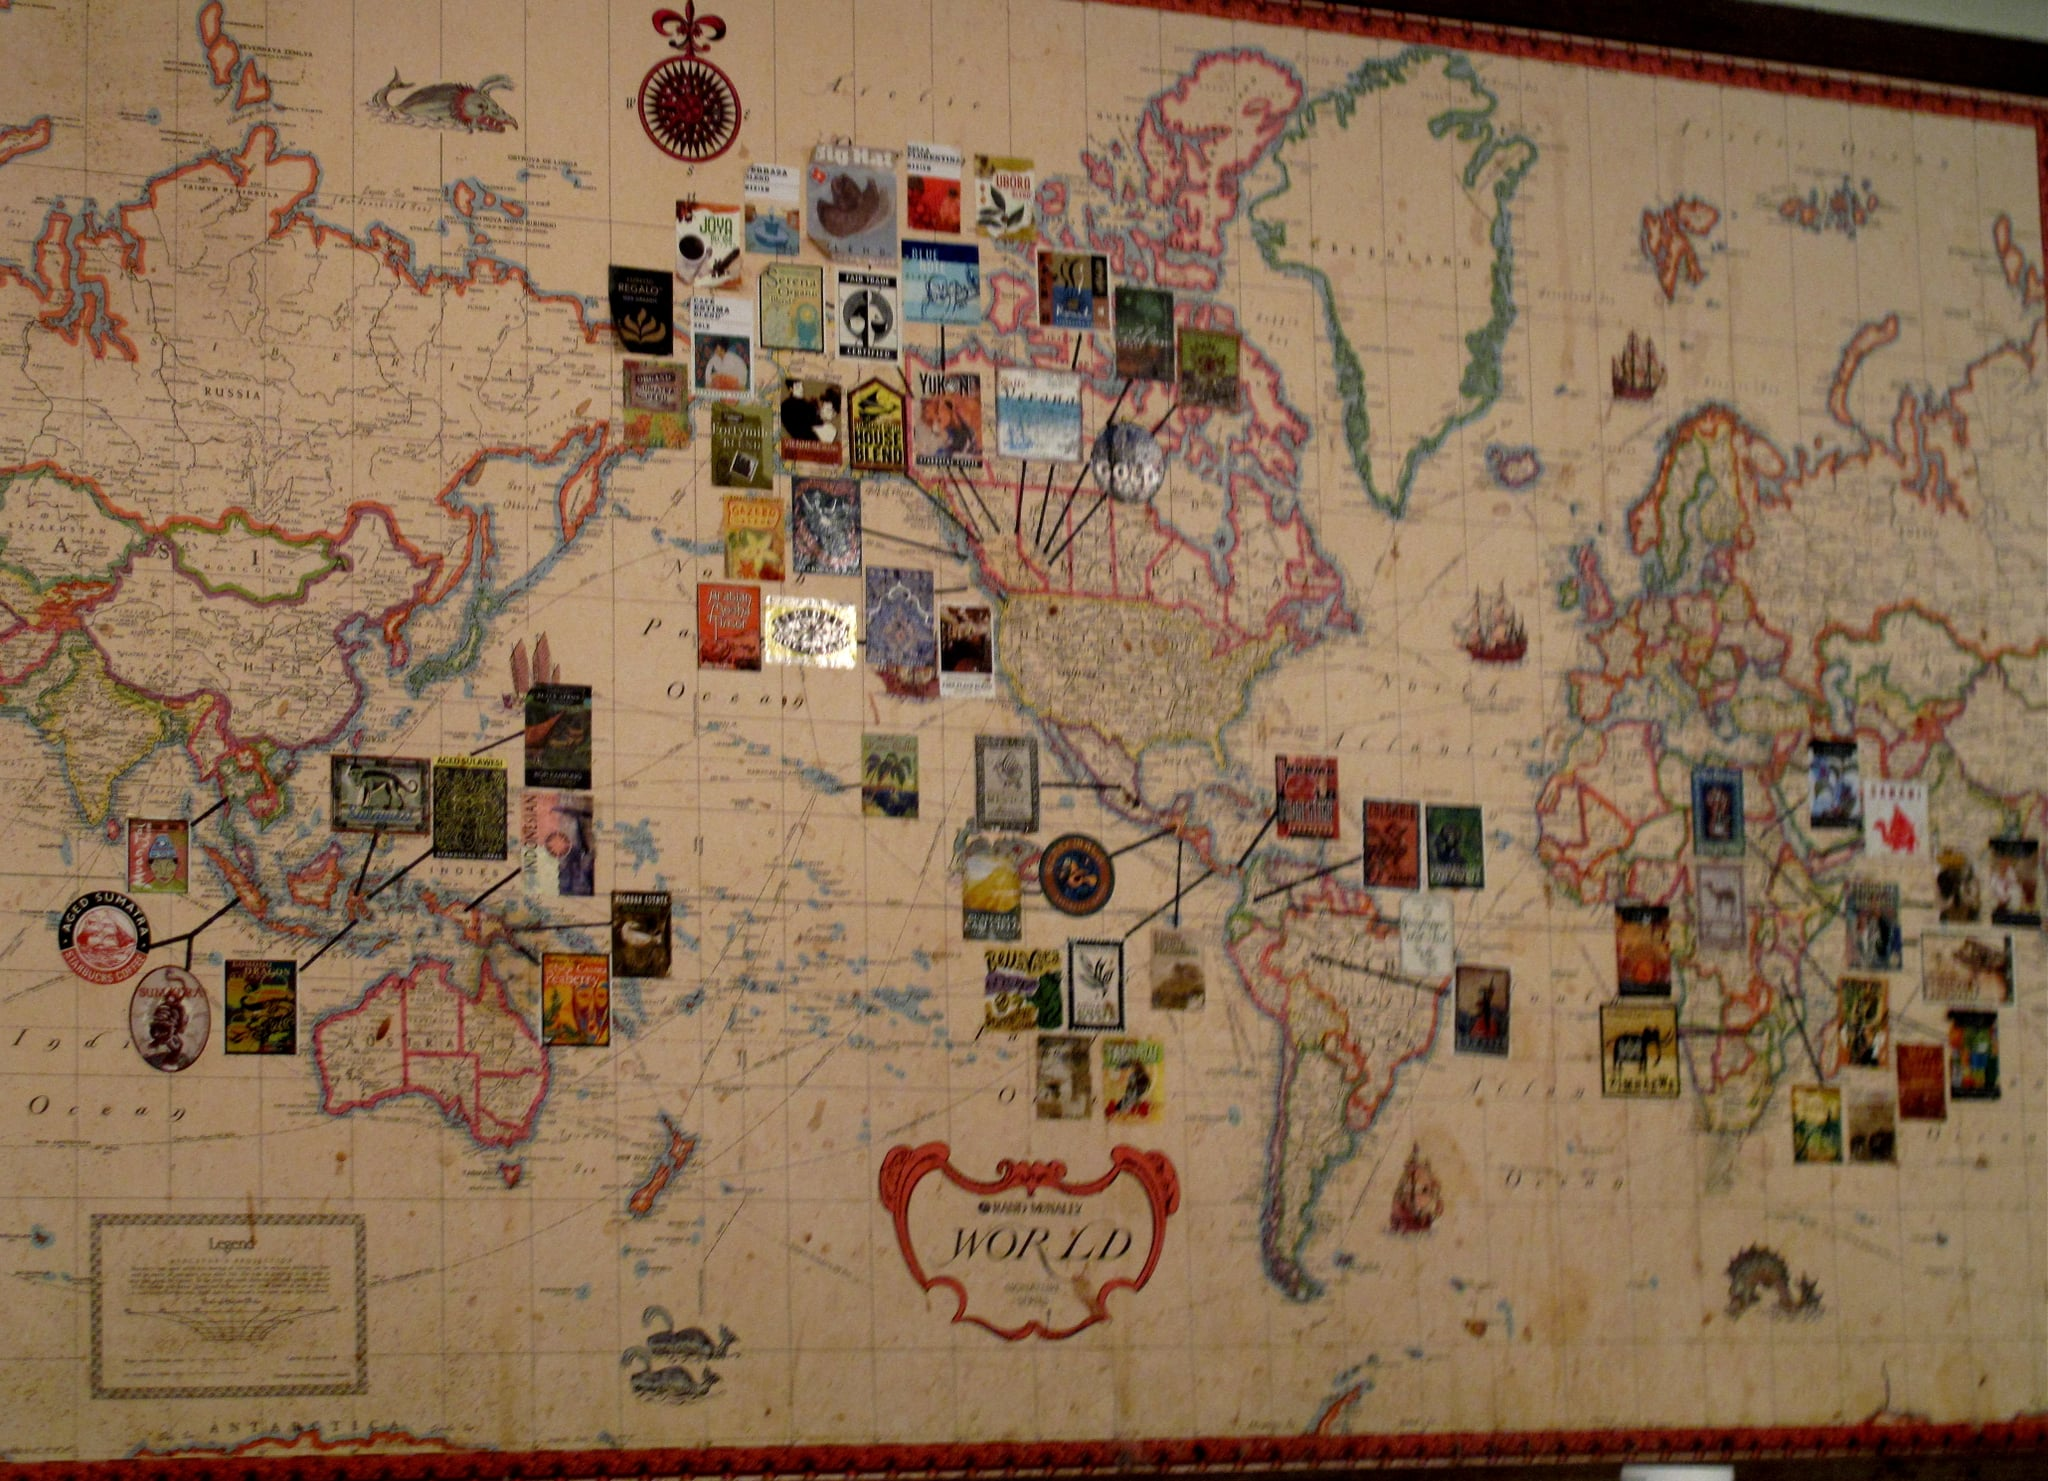 A map of the world shows all the various types of coffees across the globe that are roasted by Starbucks.